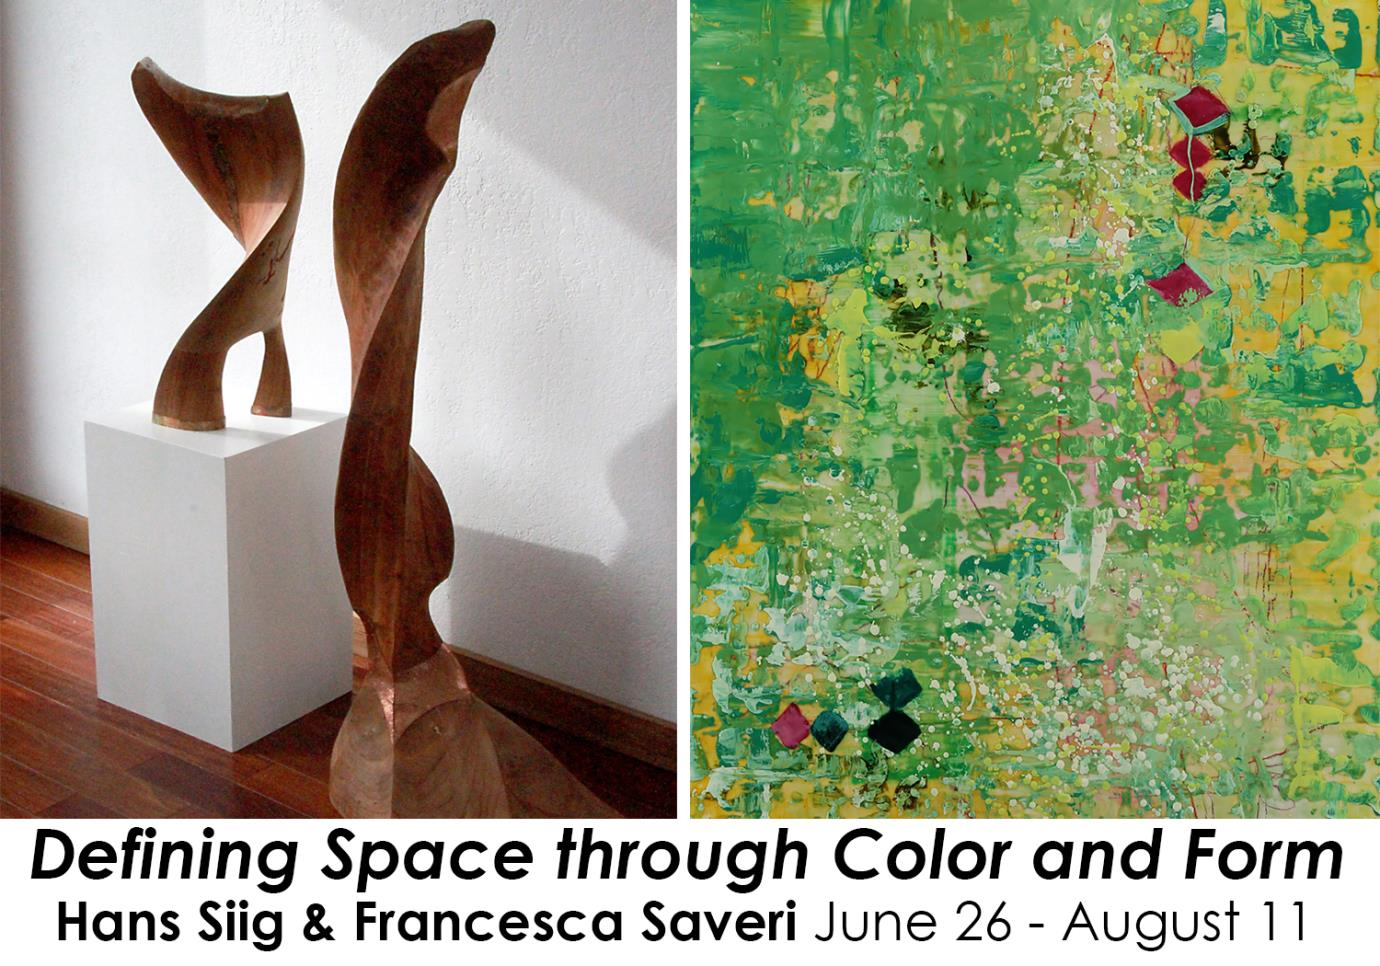 Image is separated into two images with text underneath; left: two brown curvy wooden sculptures with a white background and wood floor, right: green painting with specks of color - yellow, red, blue; text: Defining Space through Color and Form, Hans Siig & Francesca Saveri, June 26 - August 11